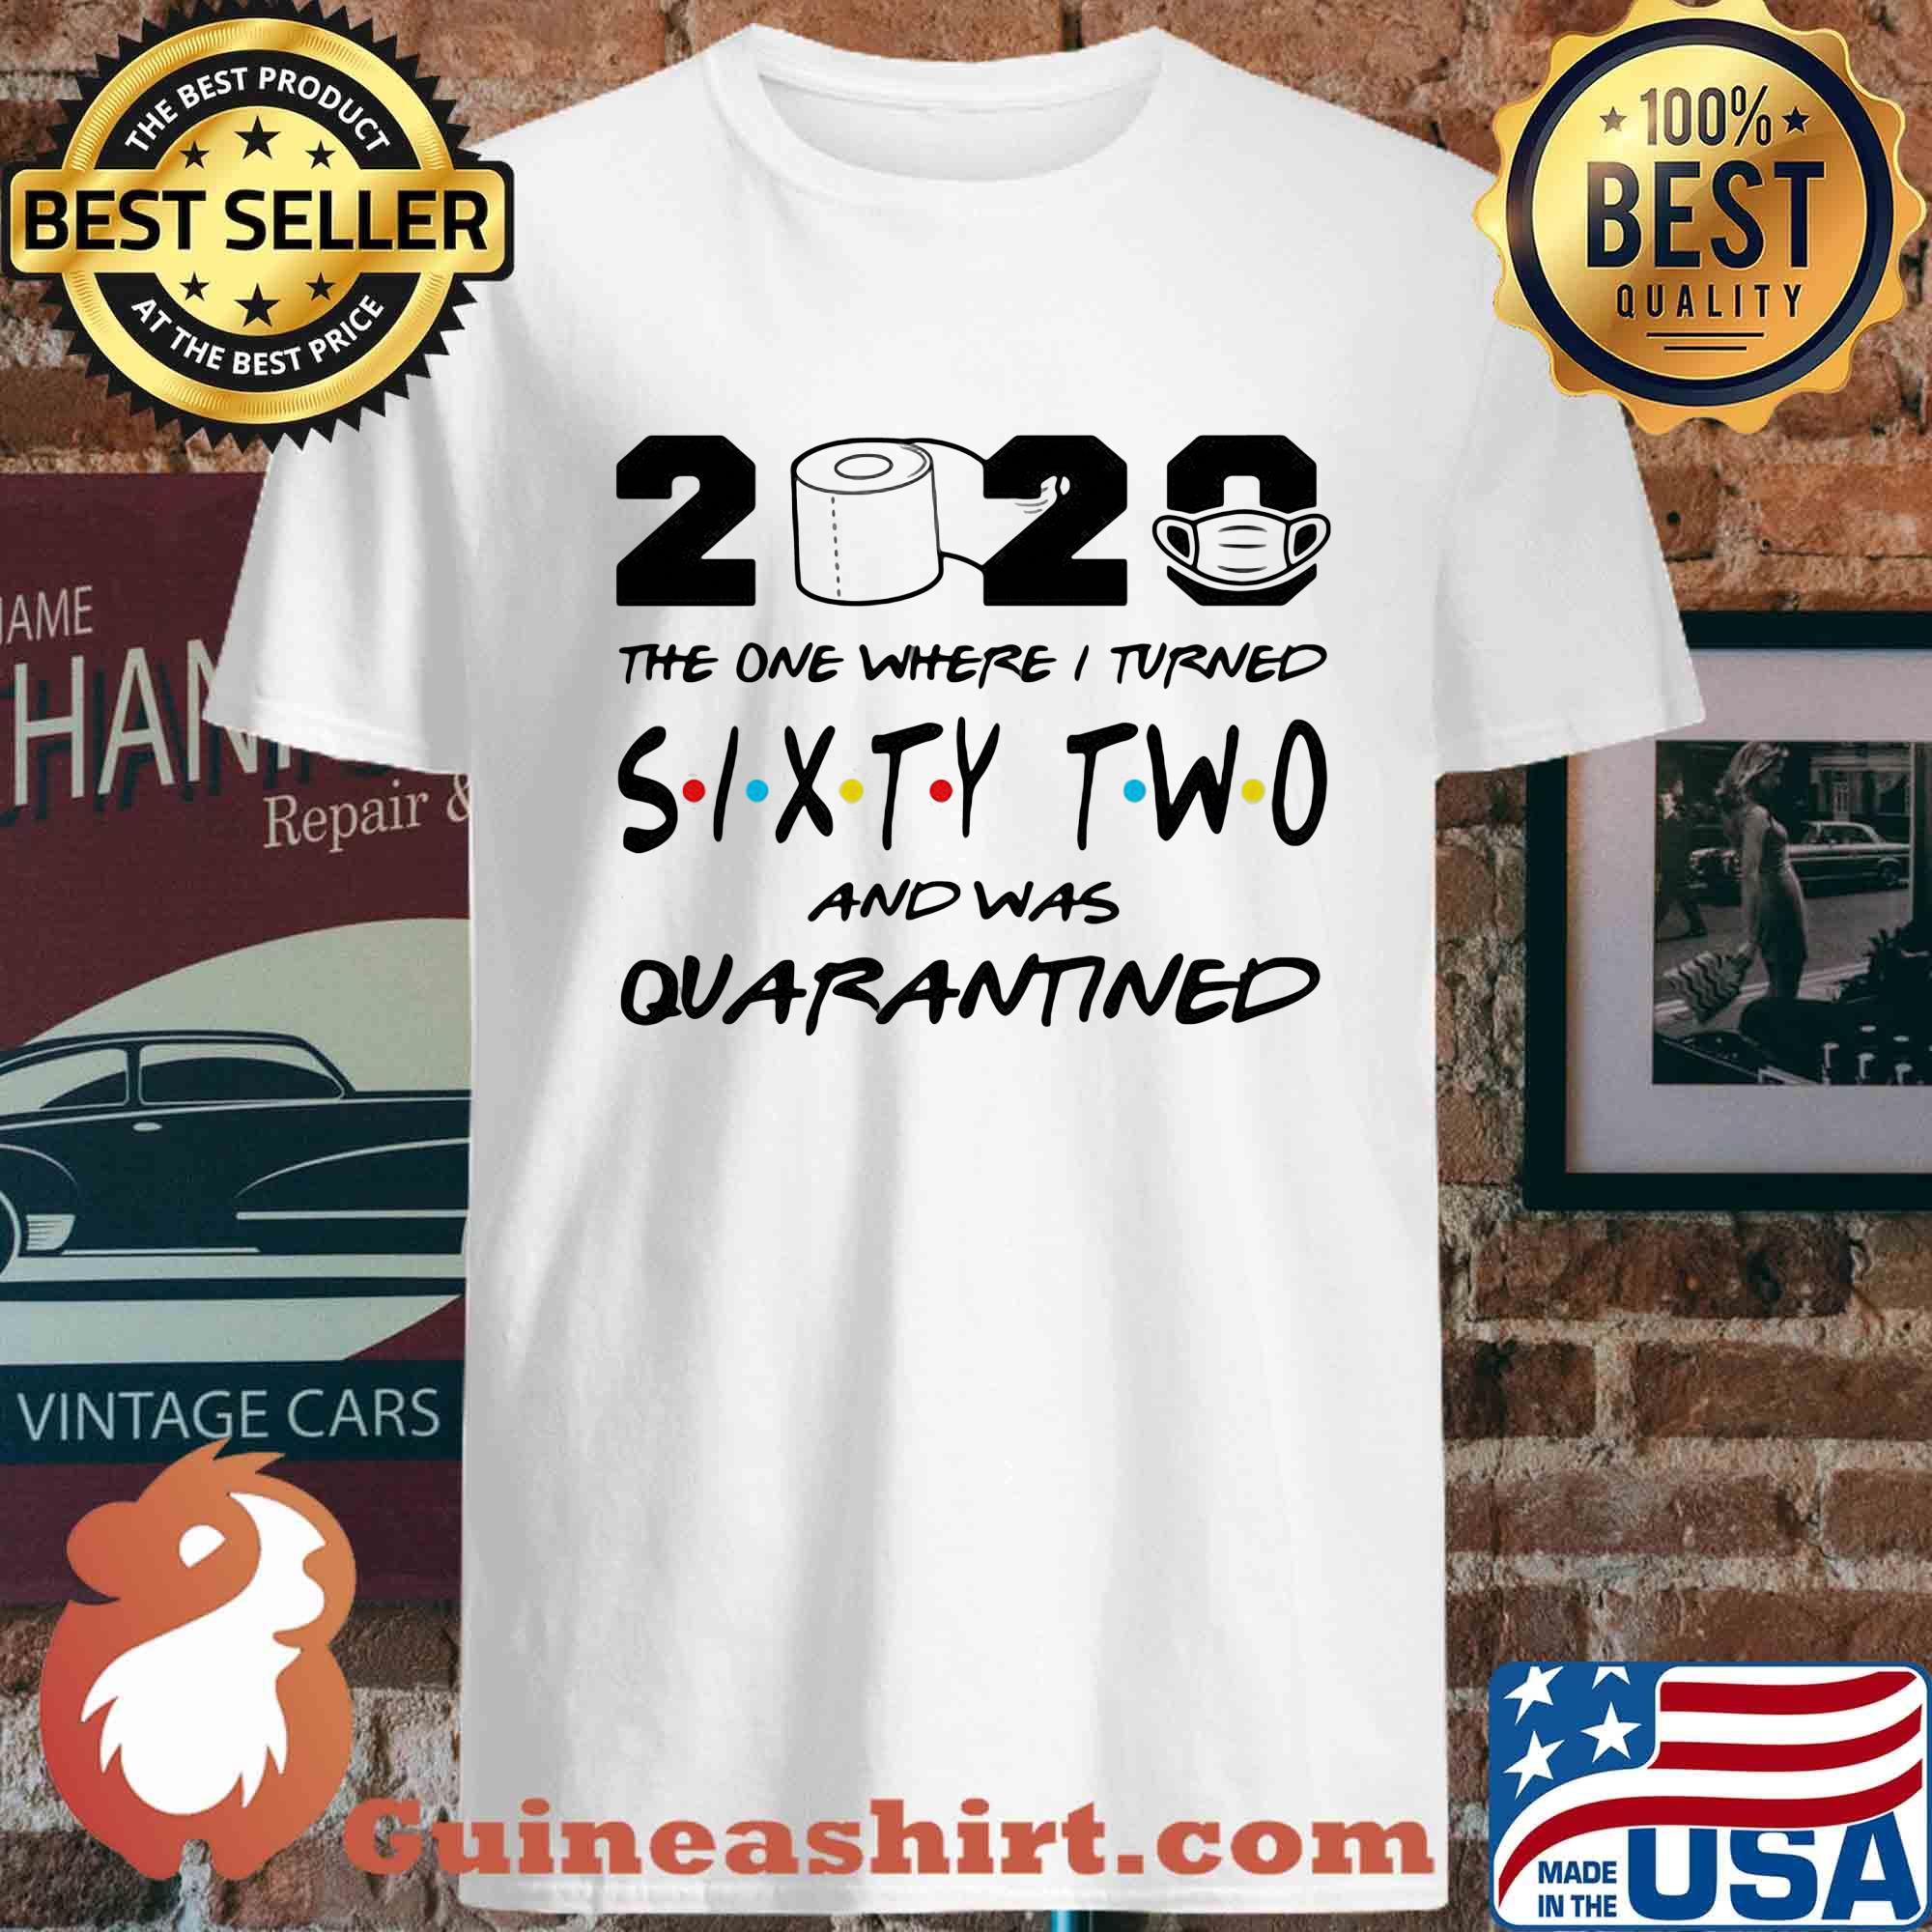 2020 the one where I turned sixty two and was quarantined shirt